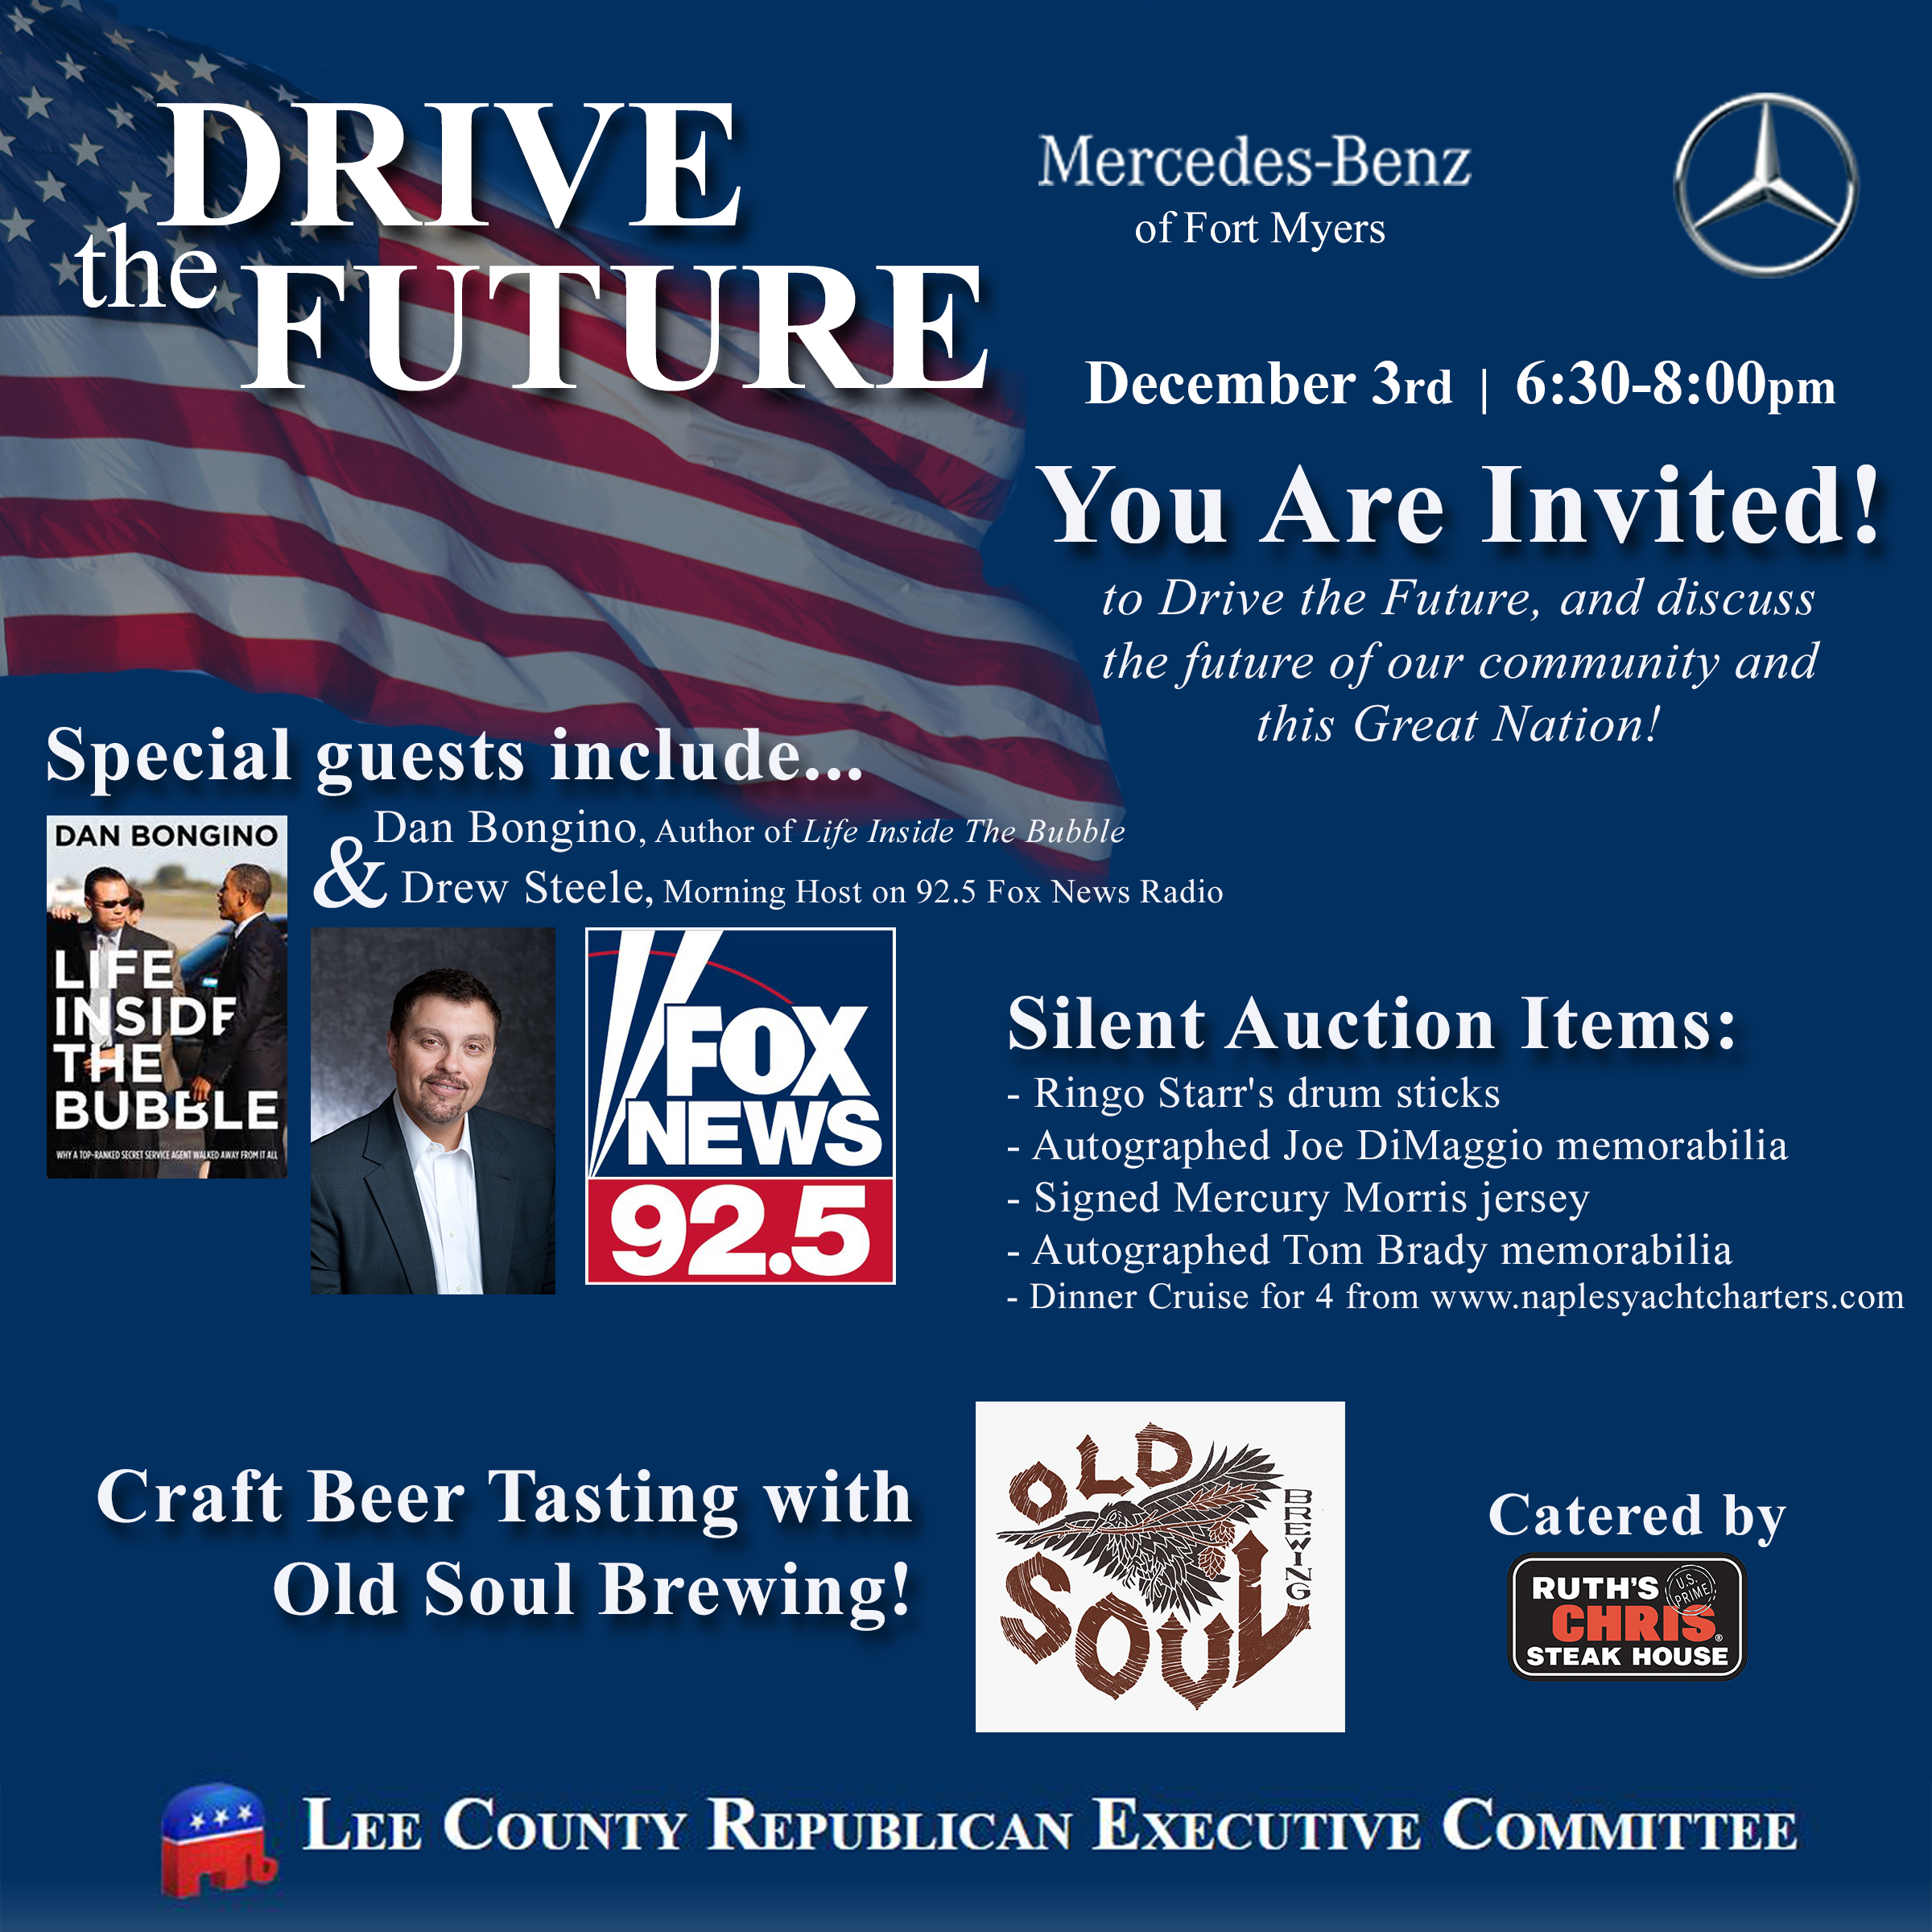 DRIVE THE FUTURE - Mercedes Benz of Fort Myers